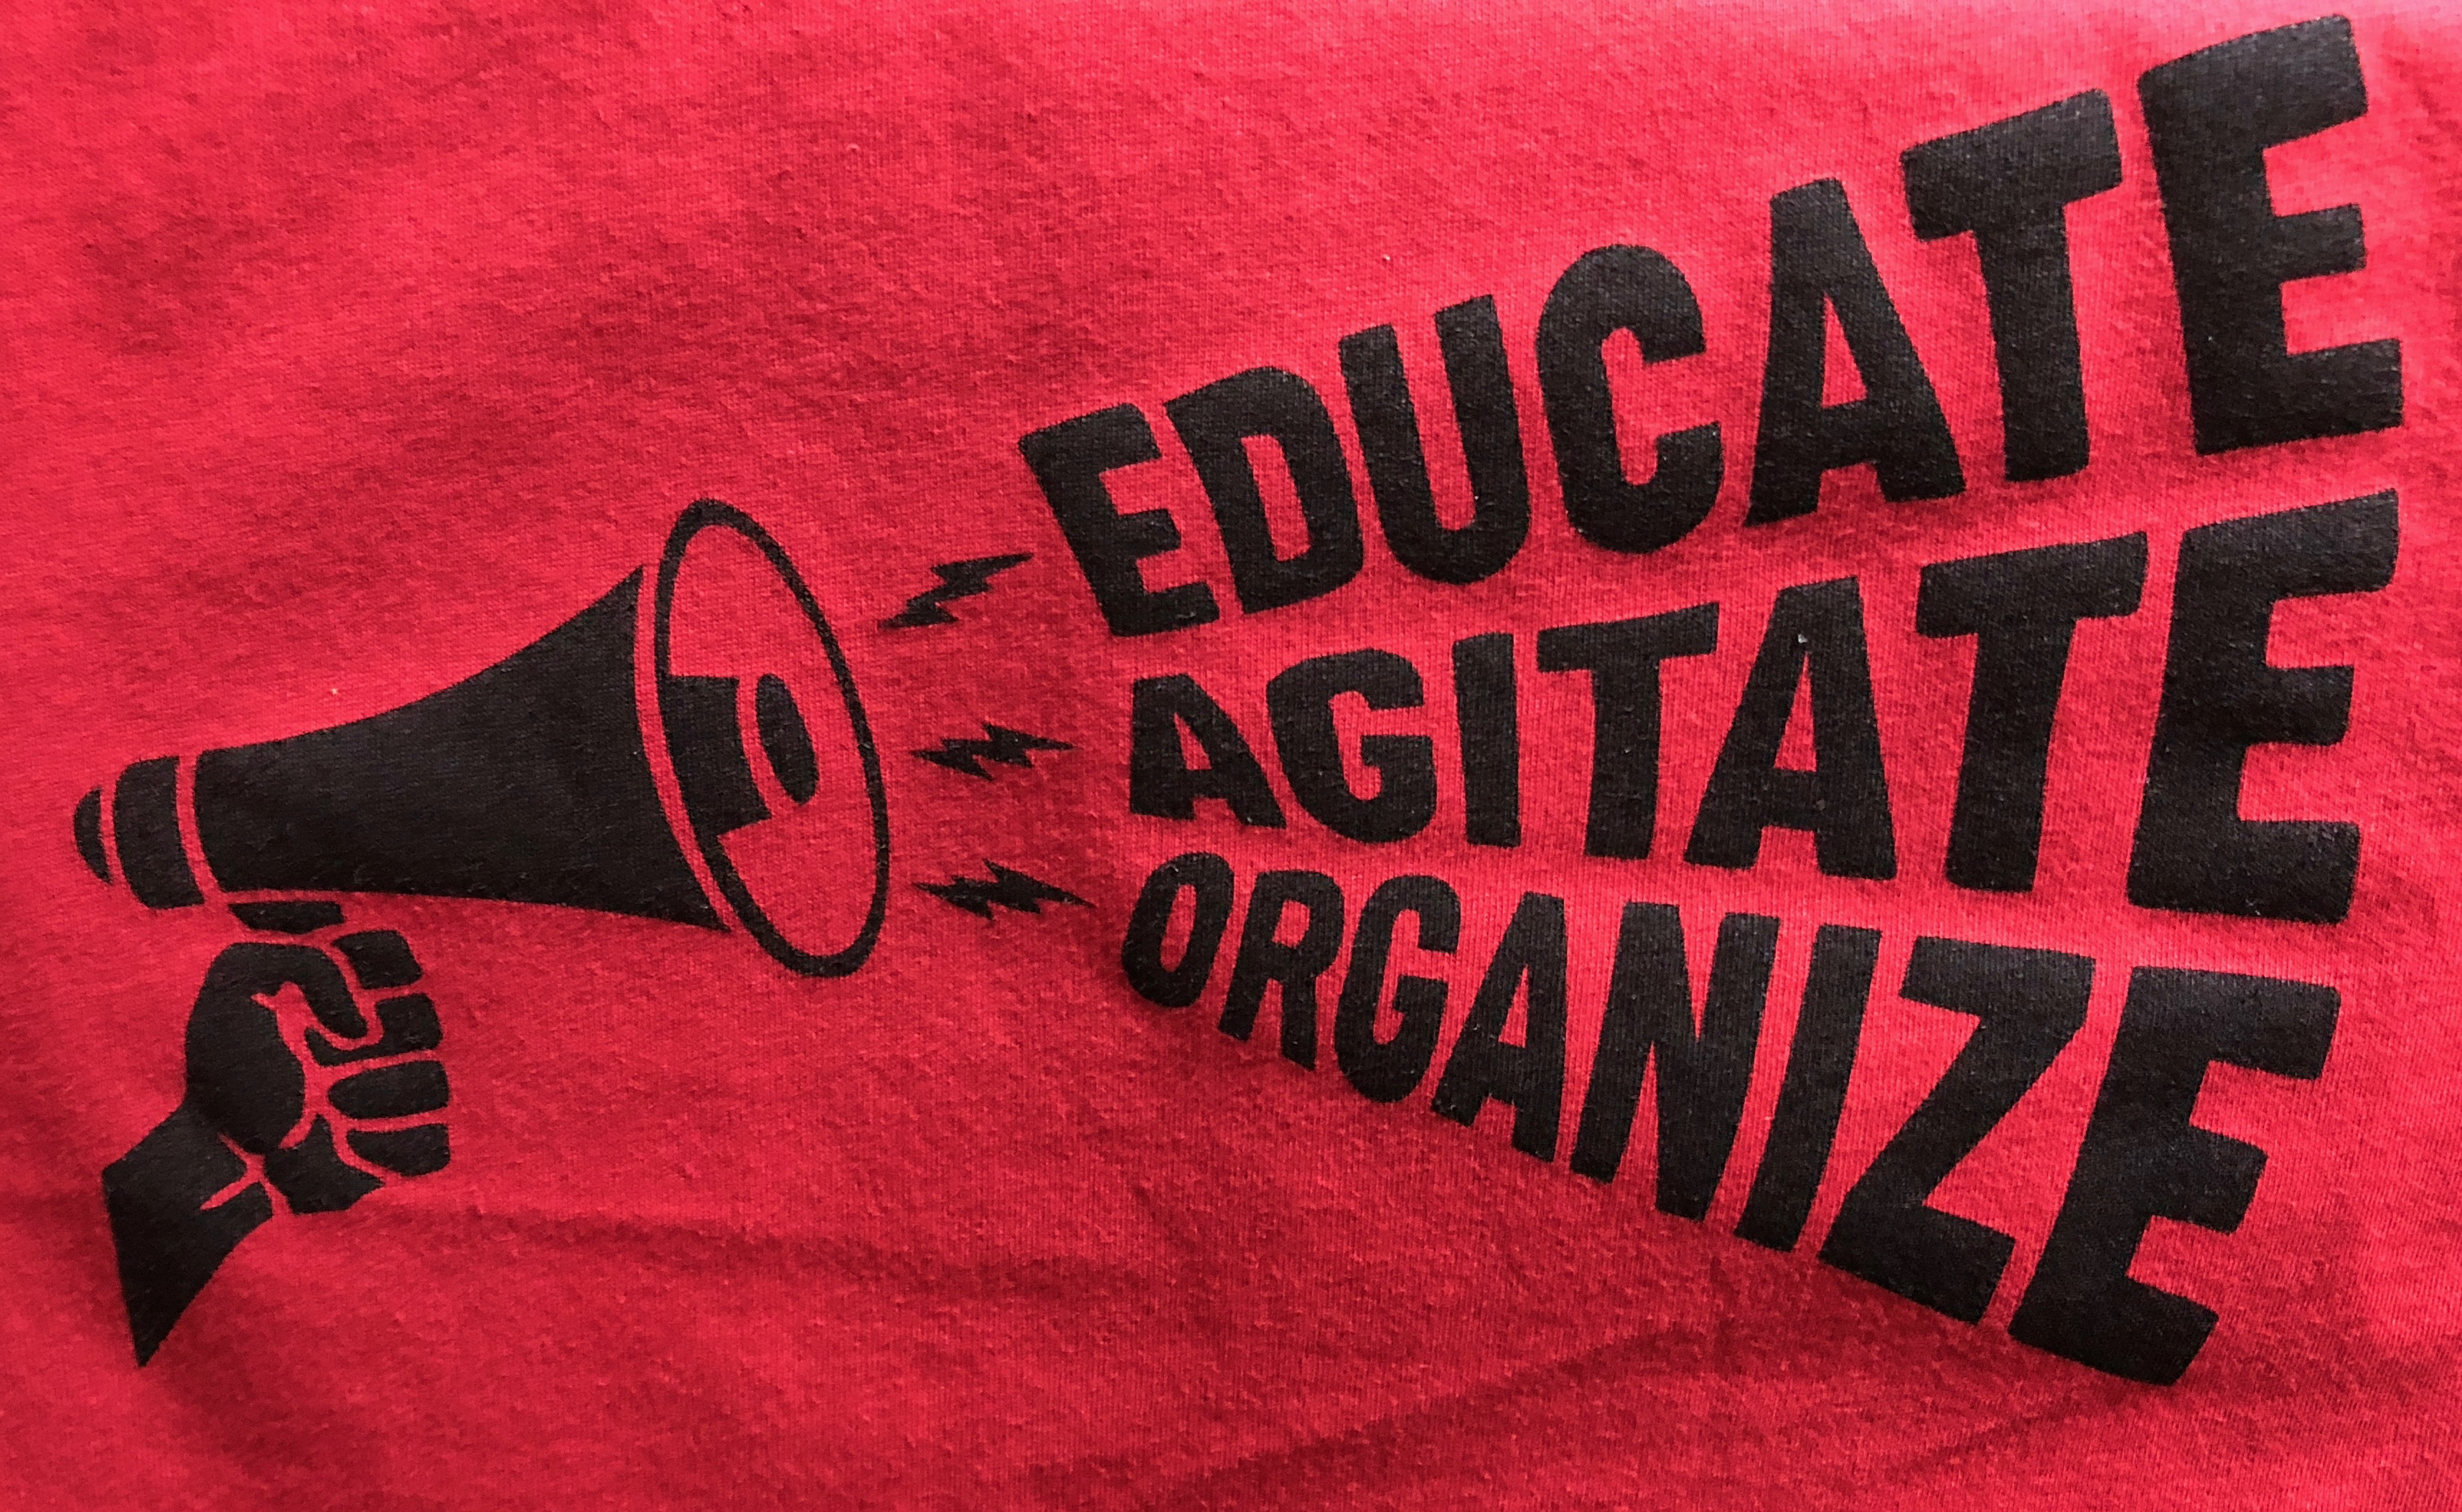 educate agitate organize black ink on red tshirts